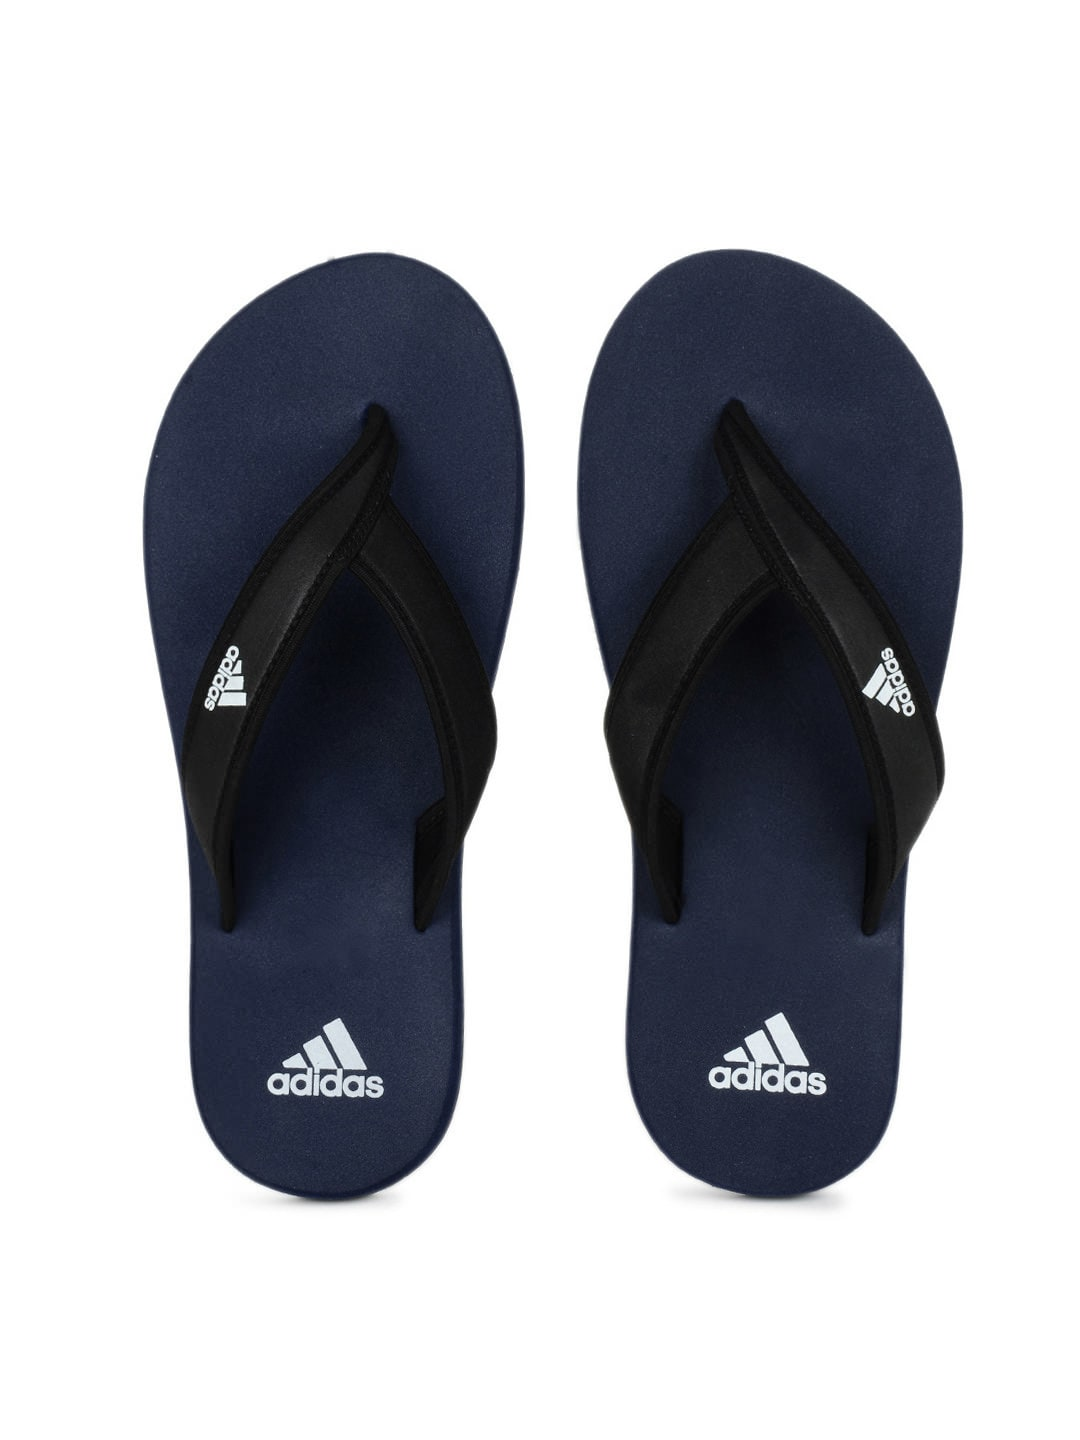 Adidas Adidas Men Black & Blue Adi Rio Flip Flops (Multicolor)